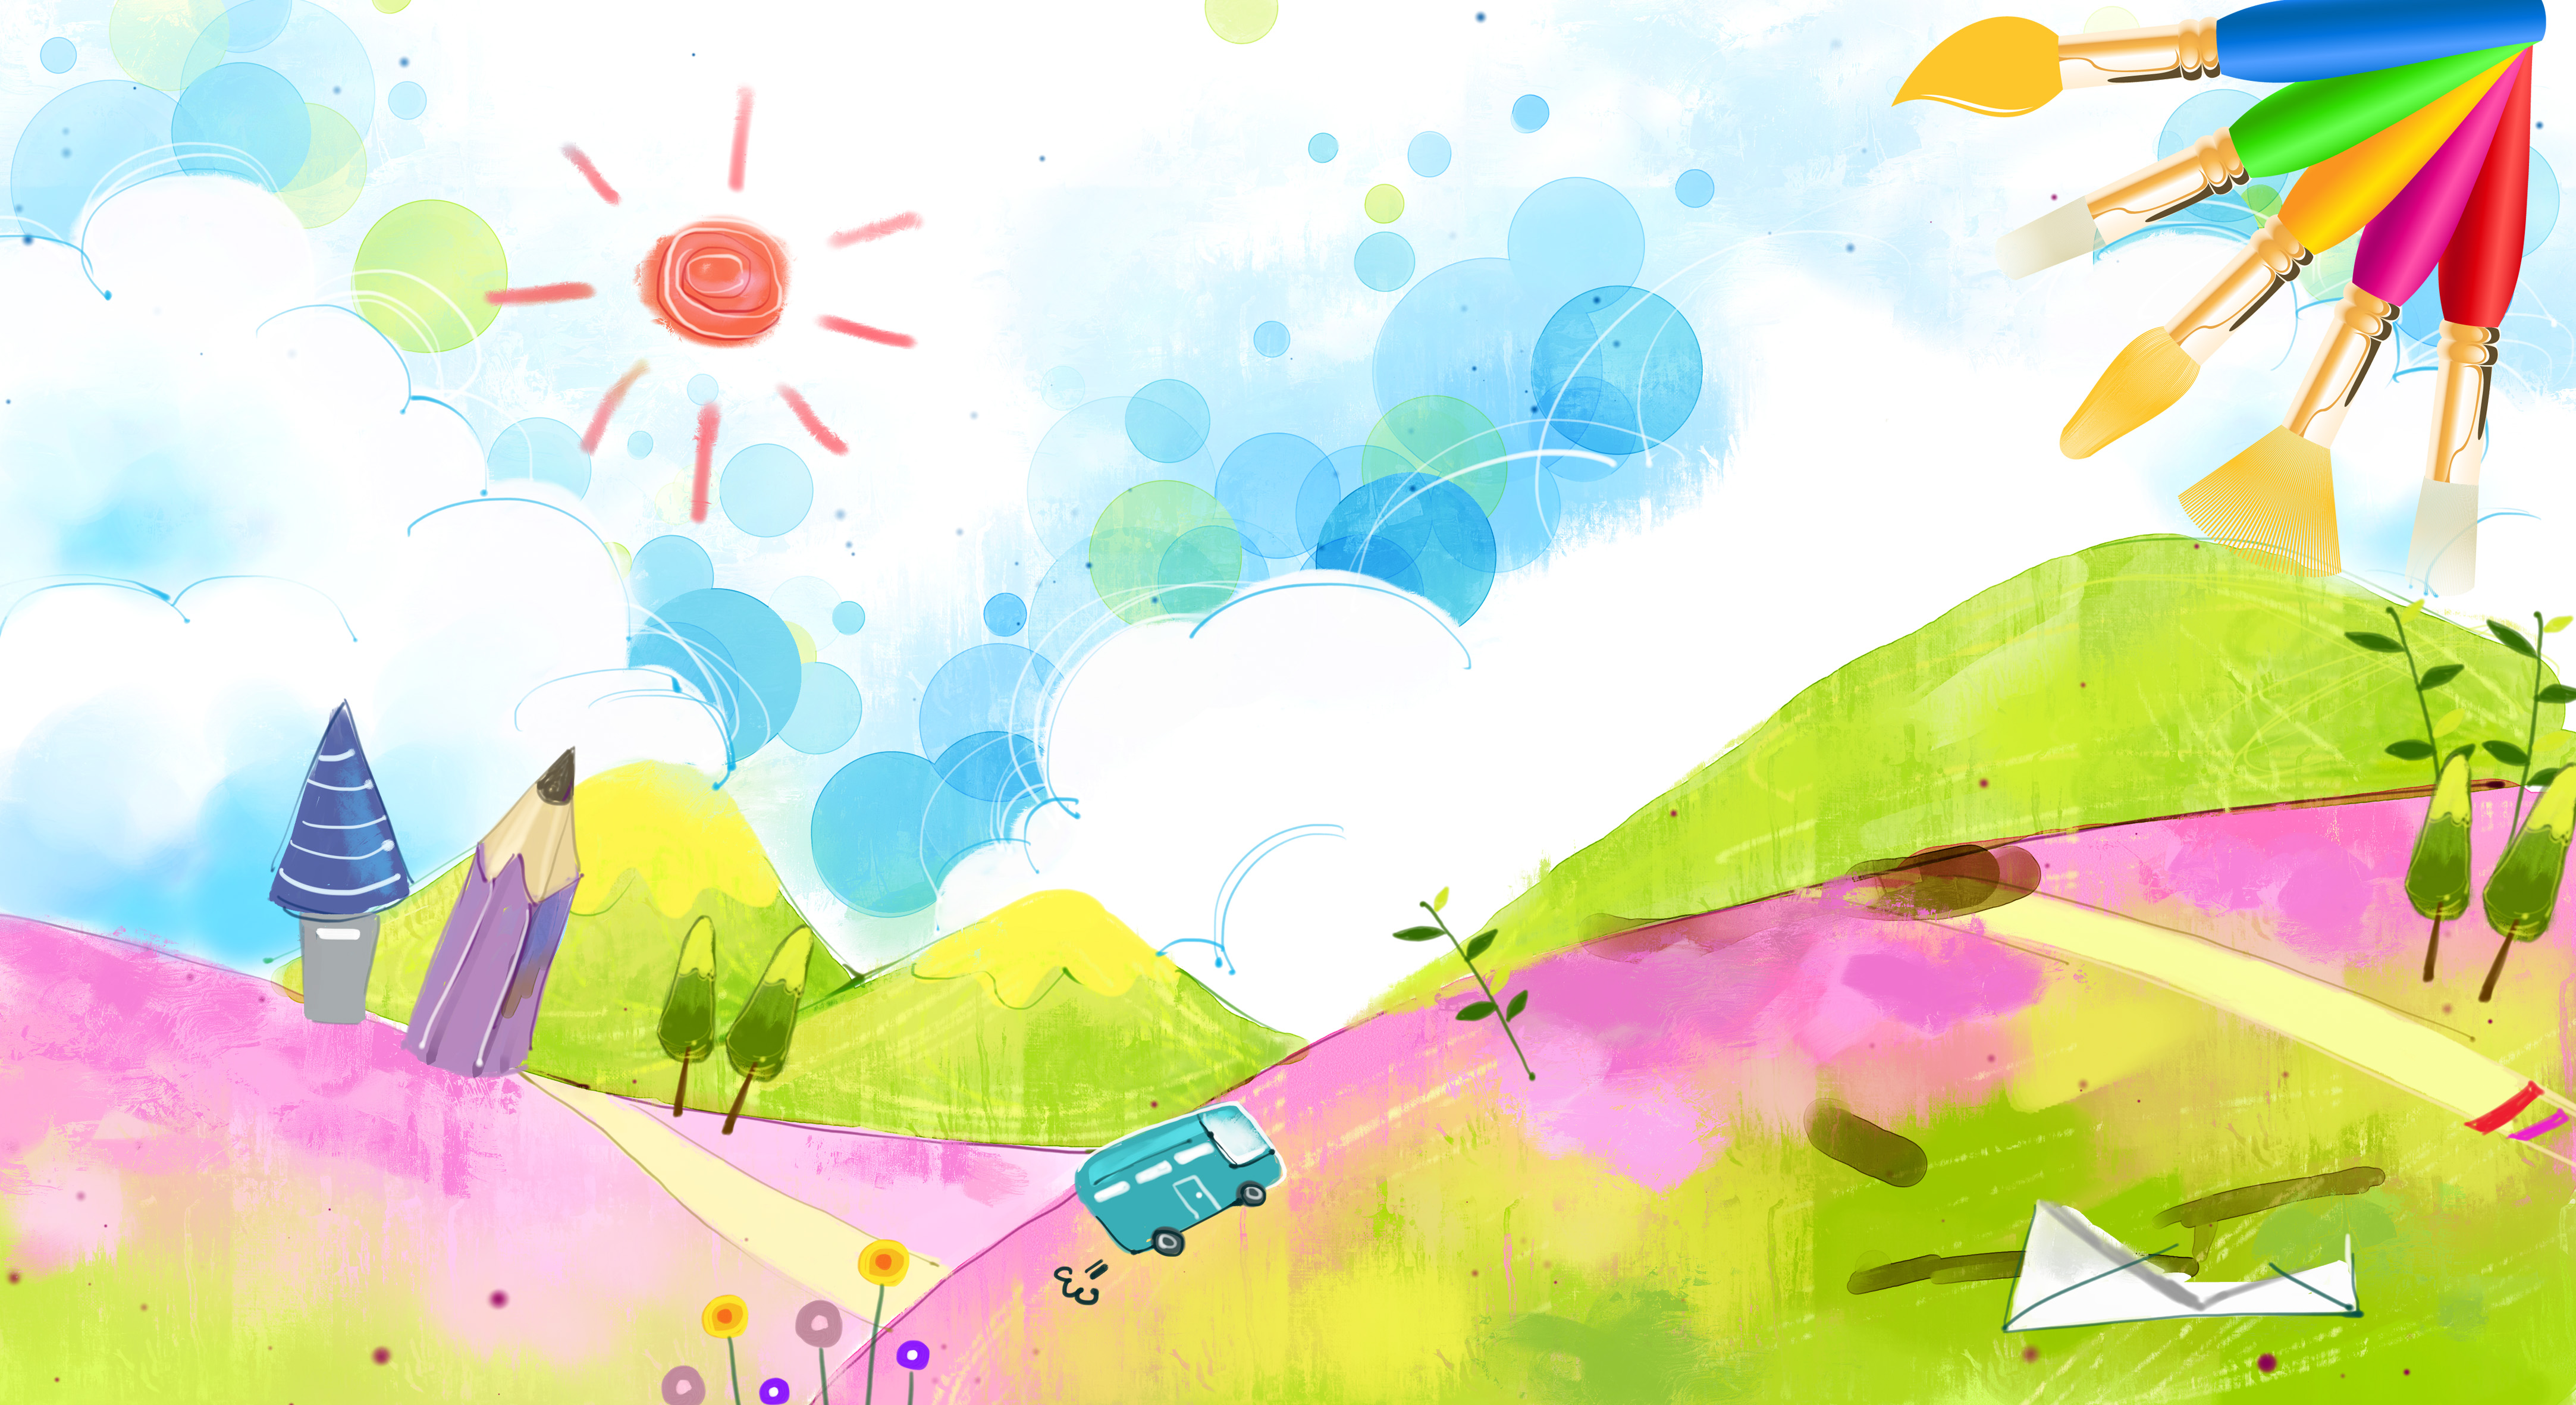 Cool Wallpapers For Boys Of Money And Cars Childrens Painting Competition Poster Background Material